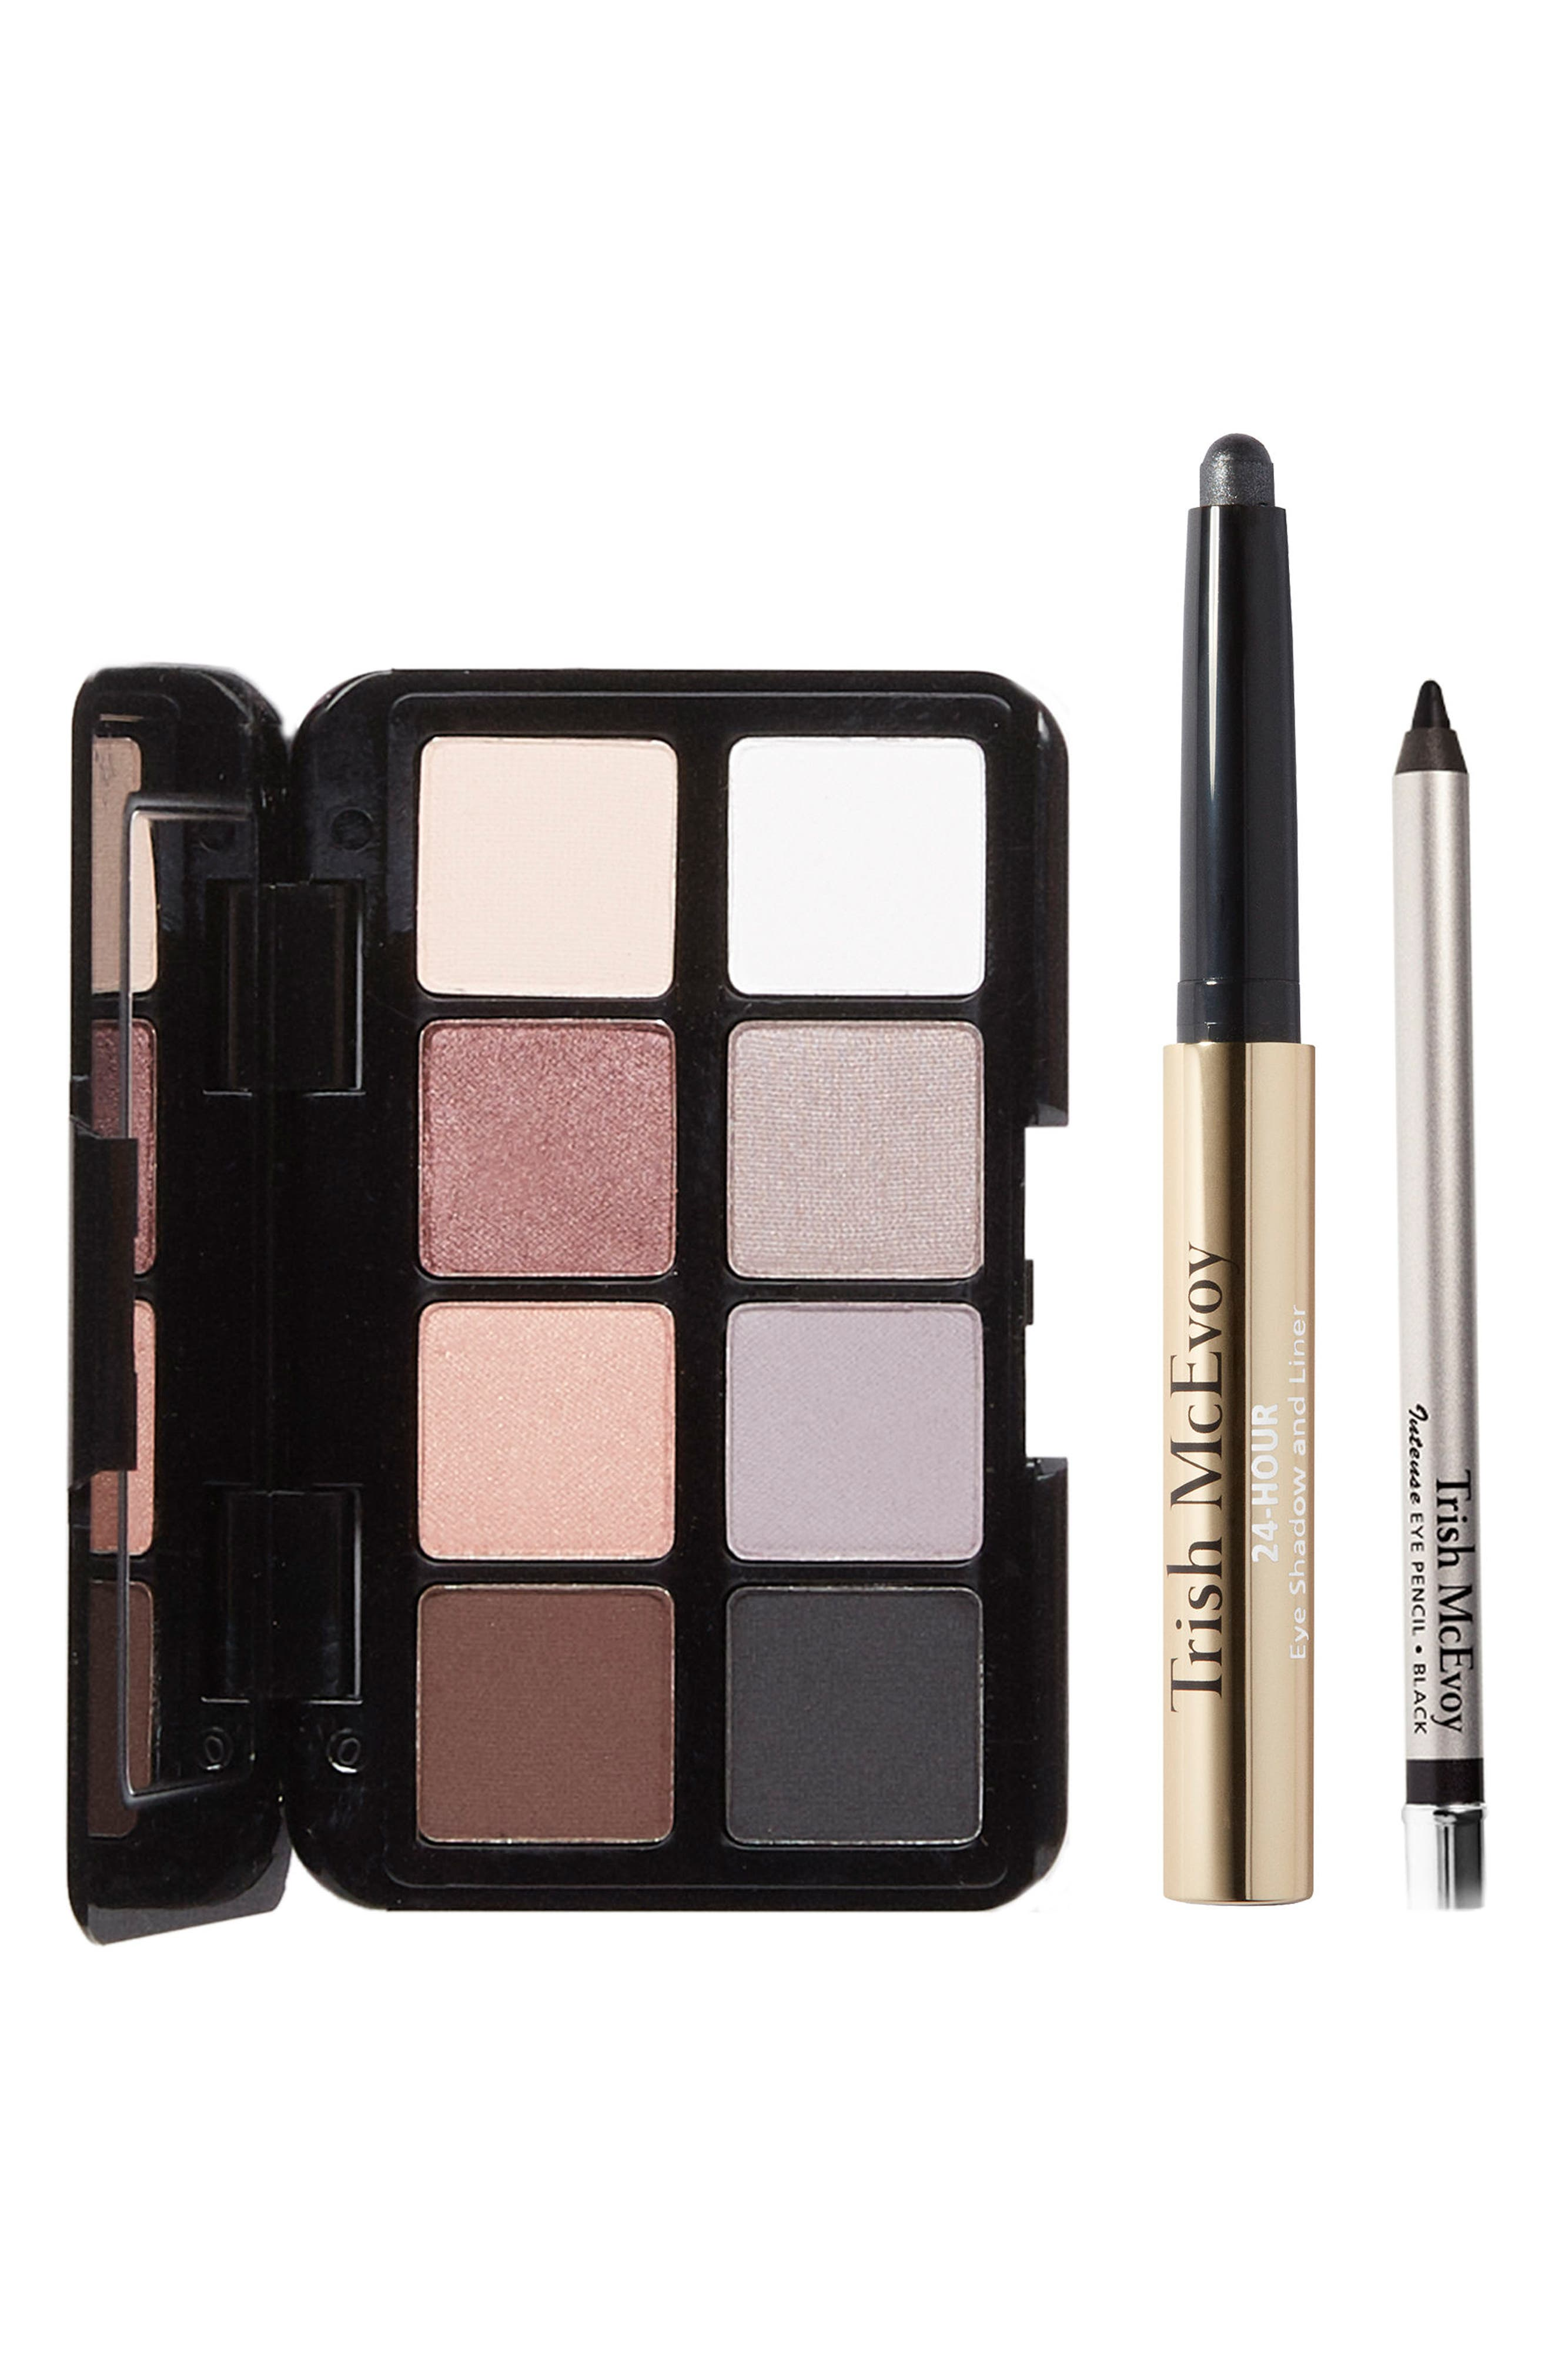 Trish McEvoy Sparkling Eyes Collection (Nordstrom Exclusive) ($85 Value)